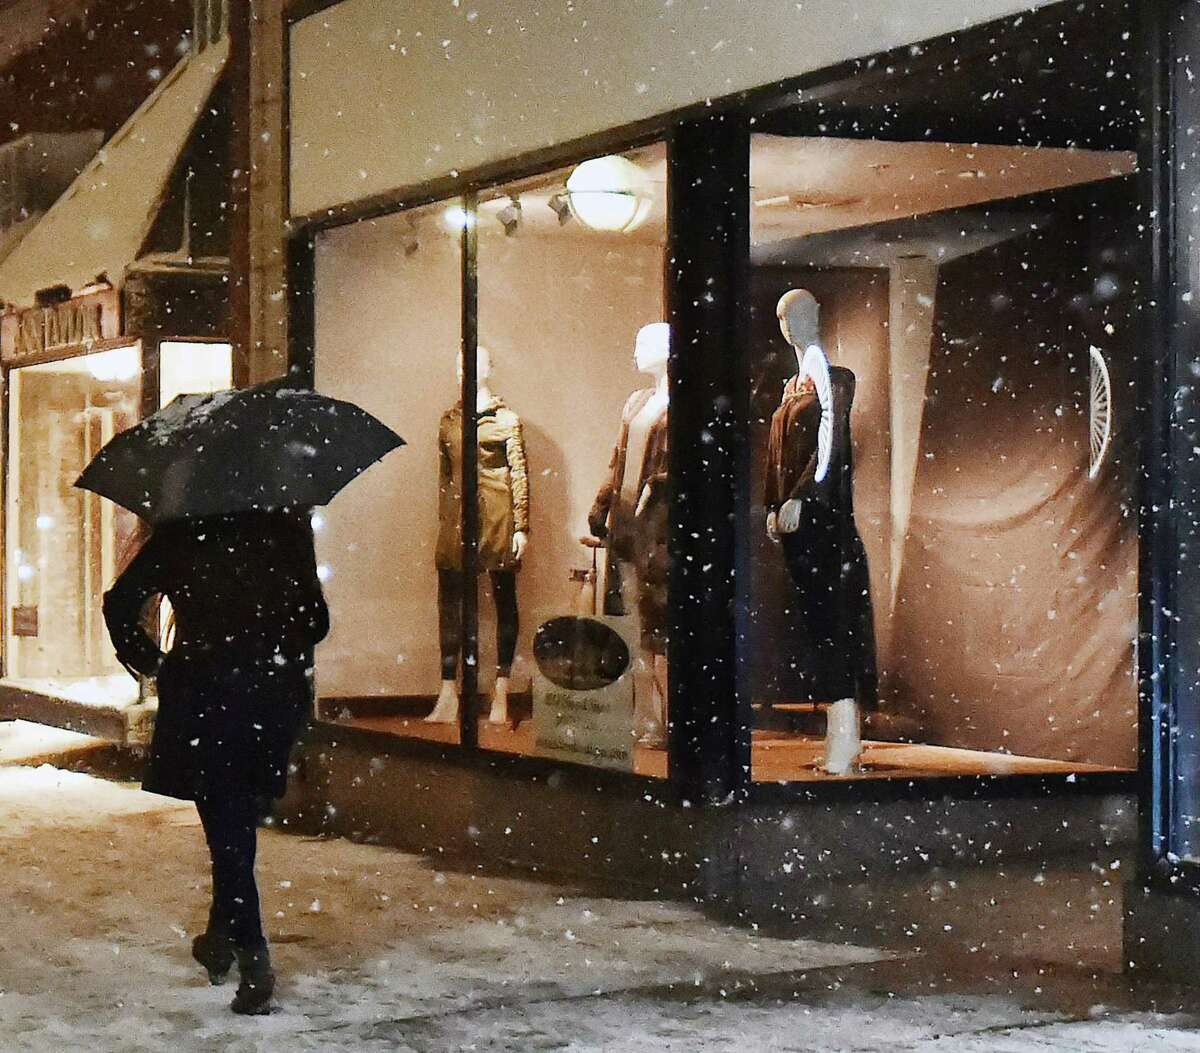 A mannequin in a window appears to be watching a woman walking with an umbrella on Chapel Street in New Haven during the snow storm, Saturday, Dec. 9, 2017. #ctweather